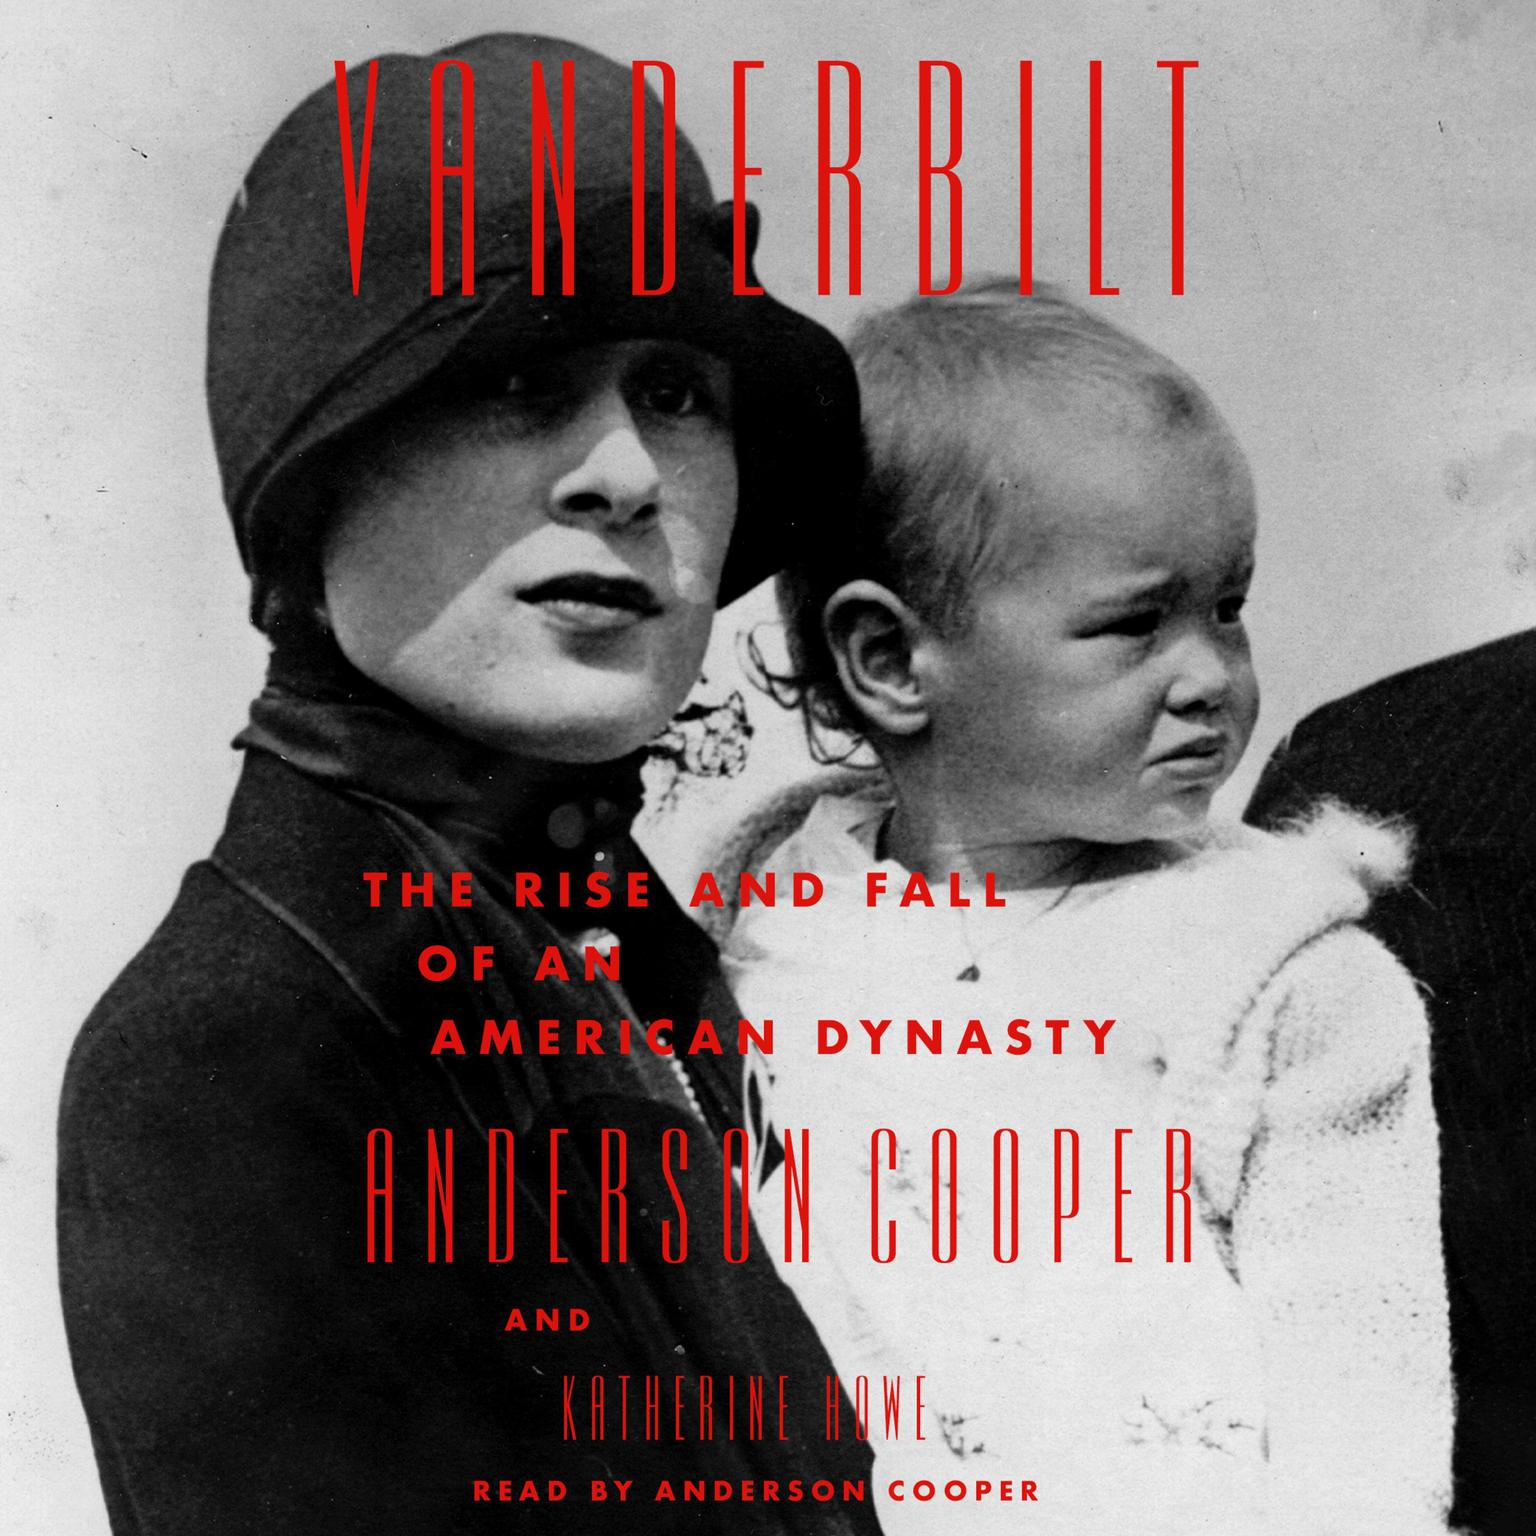 Vanderbilt: The Rise and Fall of an American Dynasty Audiobook, by Anderson Cooper